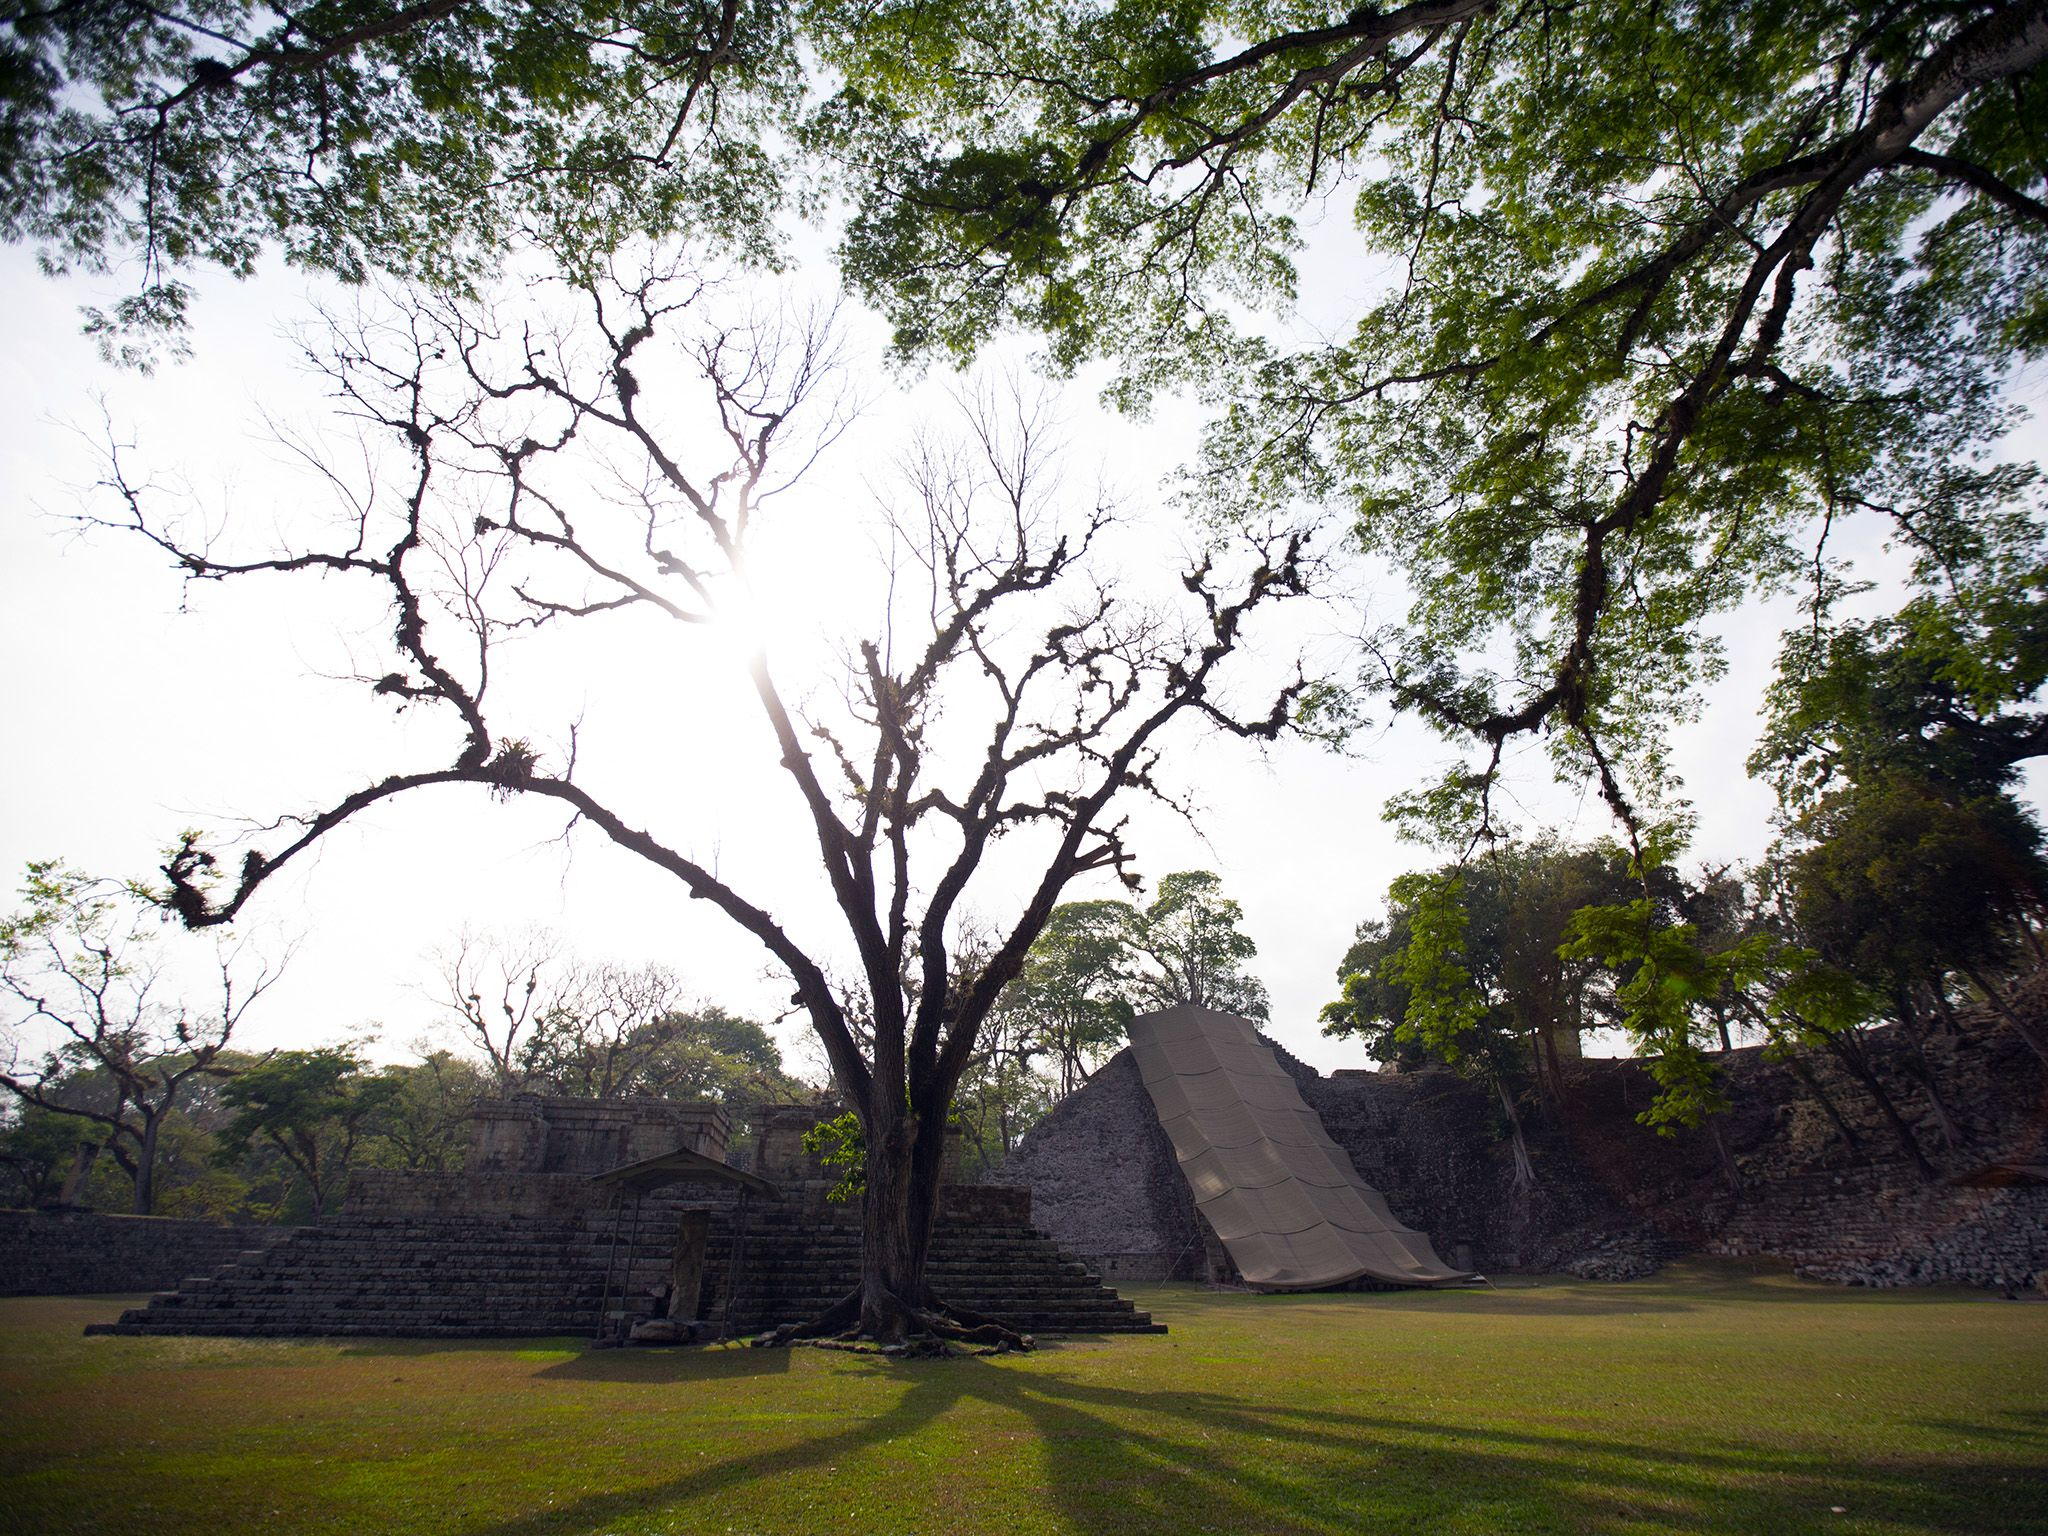 Copán, Honduras: The Copán ruins in Honduras. This image is from Legend of the Monkey God. [Photo of the day - 十月 2015]